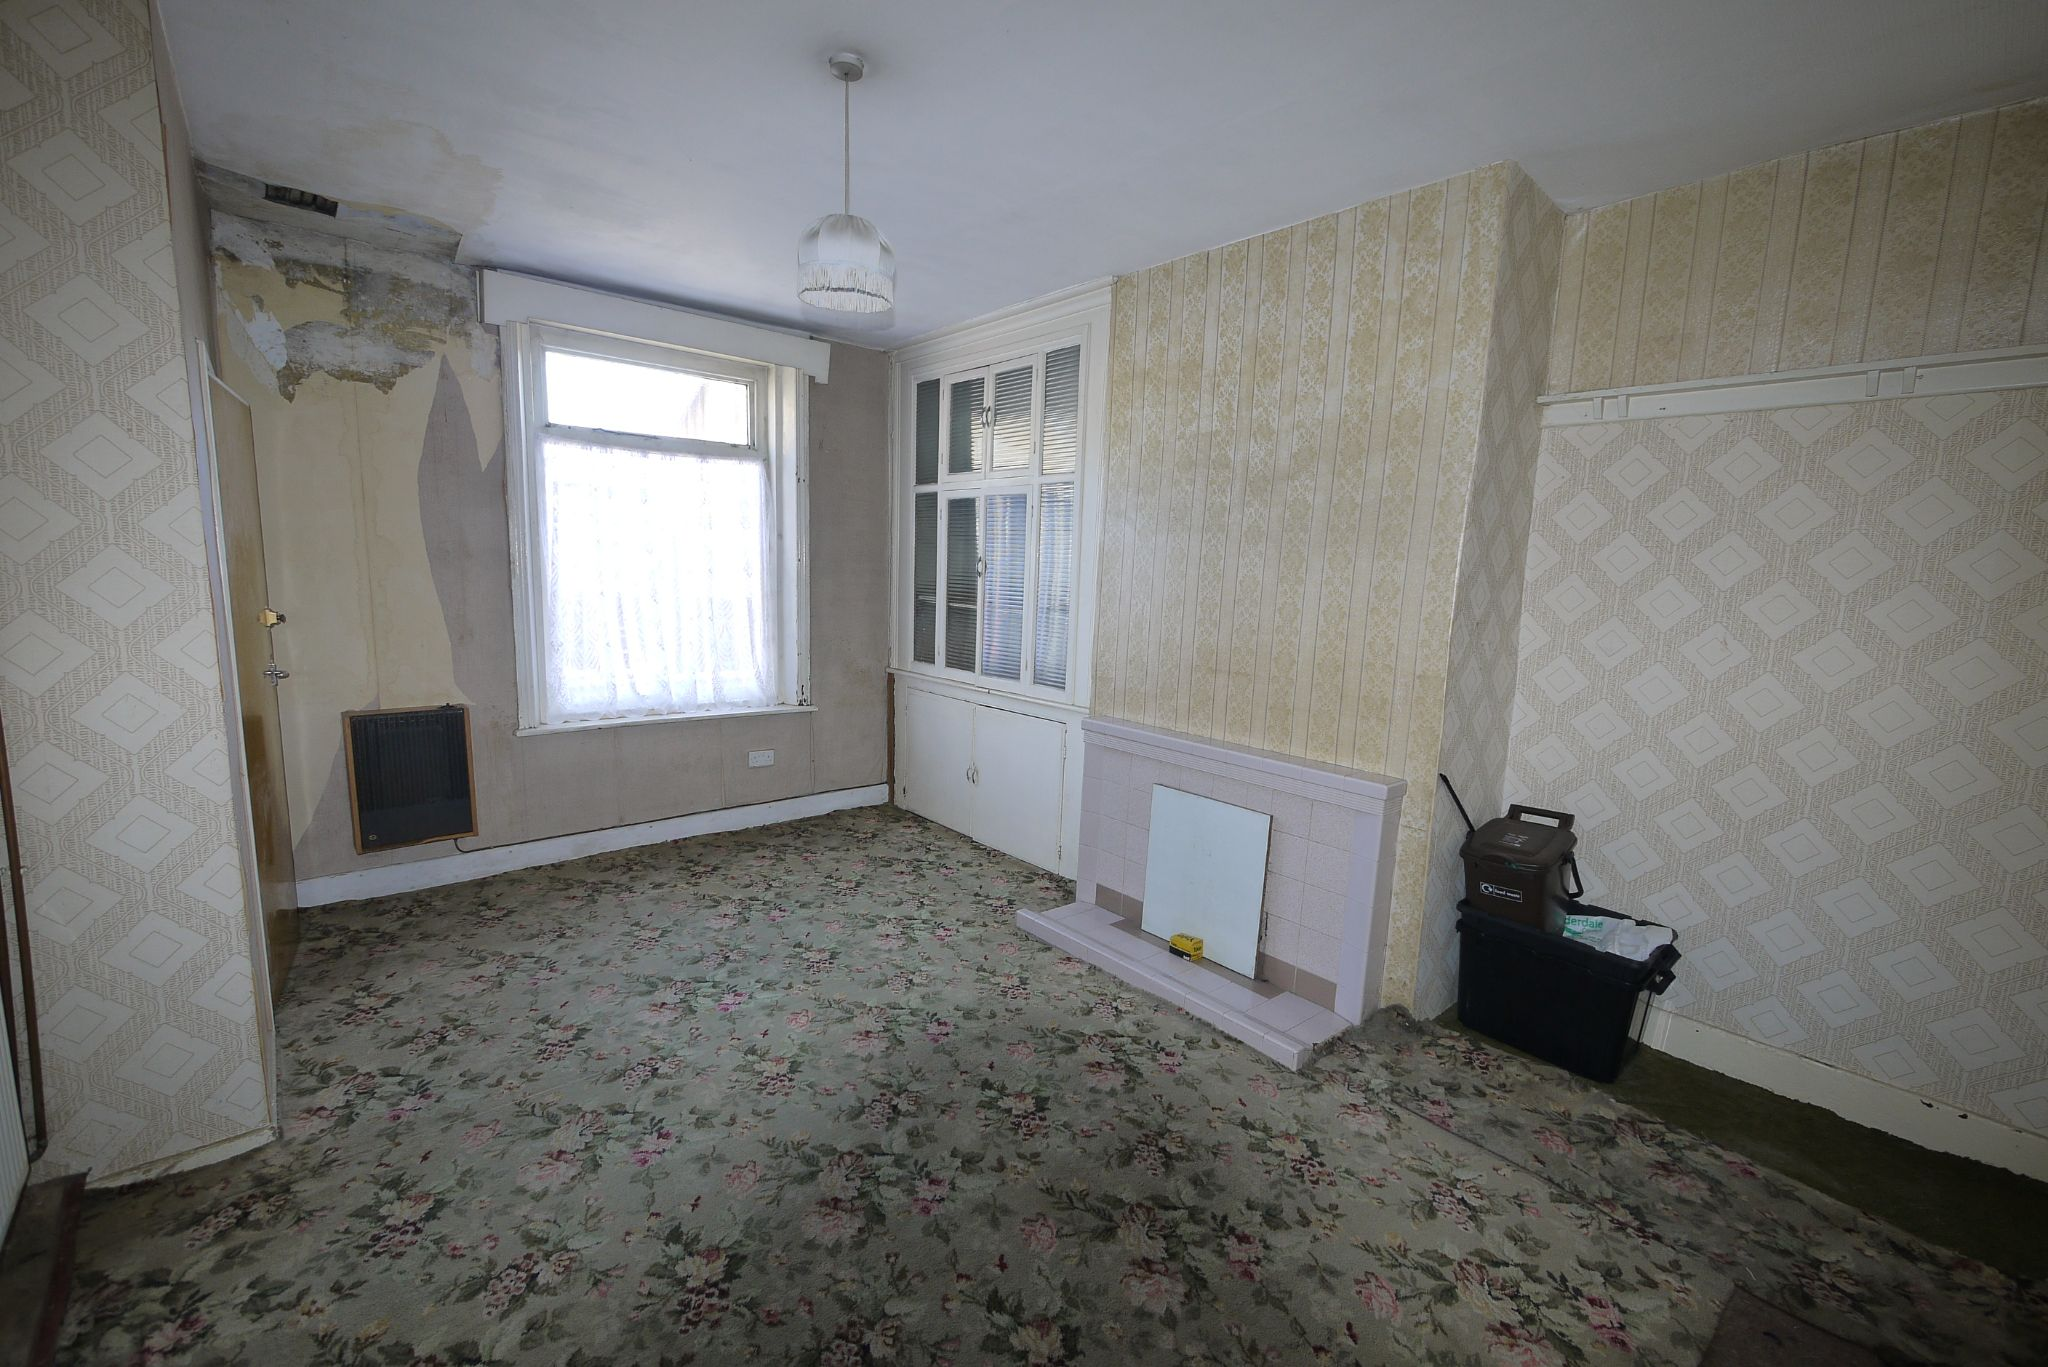 1 bedroom end terraced house SSTC in Brighouse - Lounge 2.